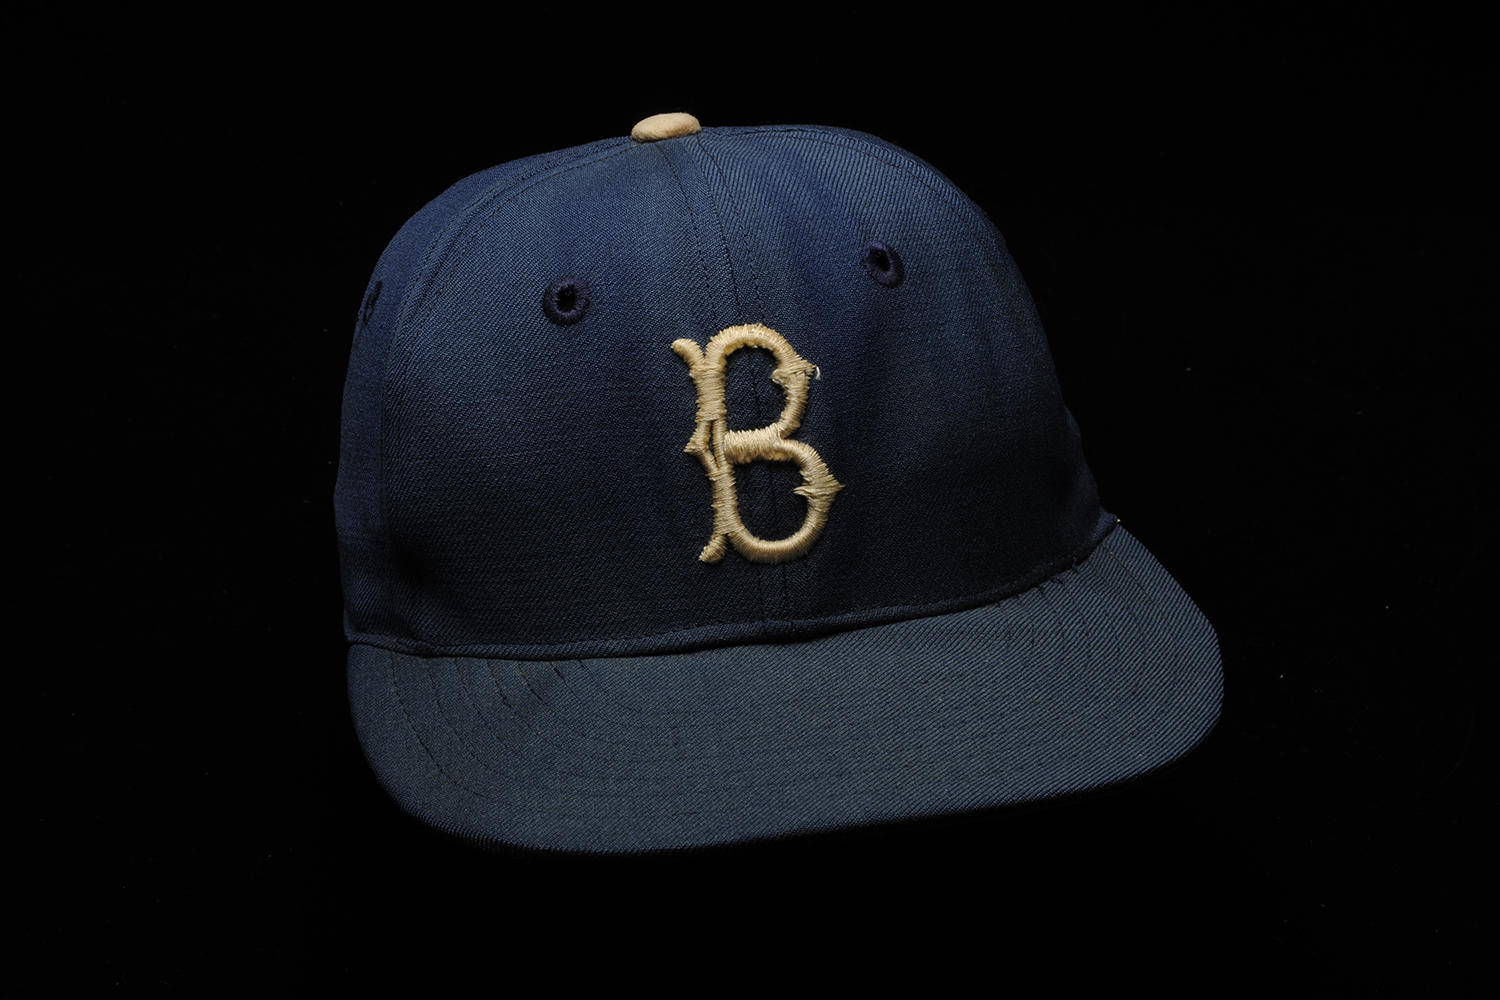 Jackie Robinson wore this cap during the 1955 World Series, during which the Brooklyn Dodgers defeated the New York Yankees in seven games. (Milo Stewart Jr. / National Baseball Hall of Fame and Museum)